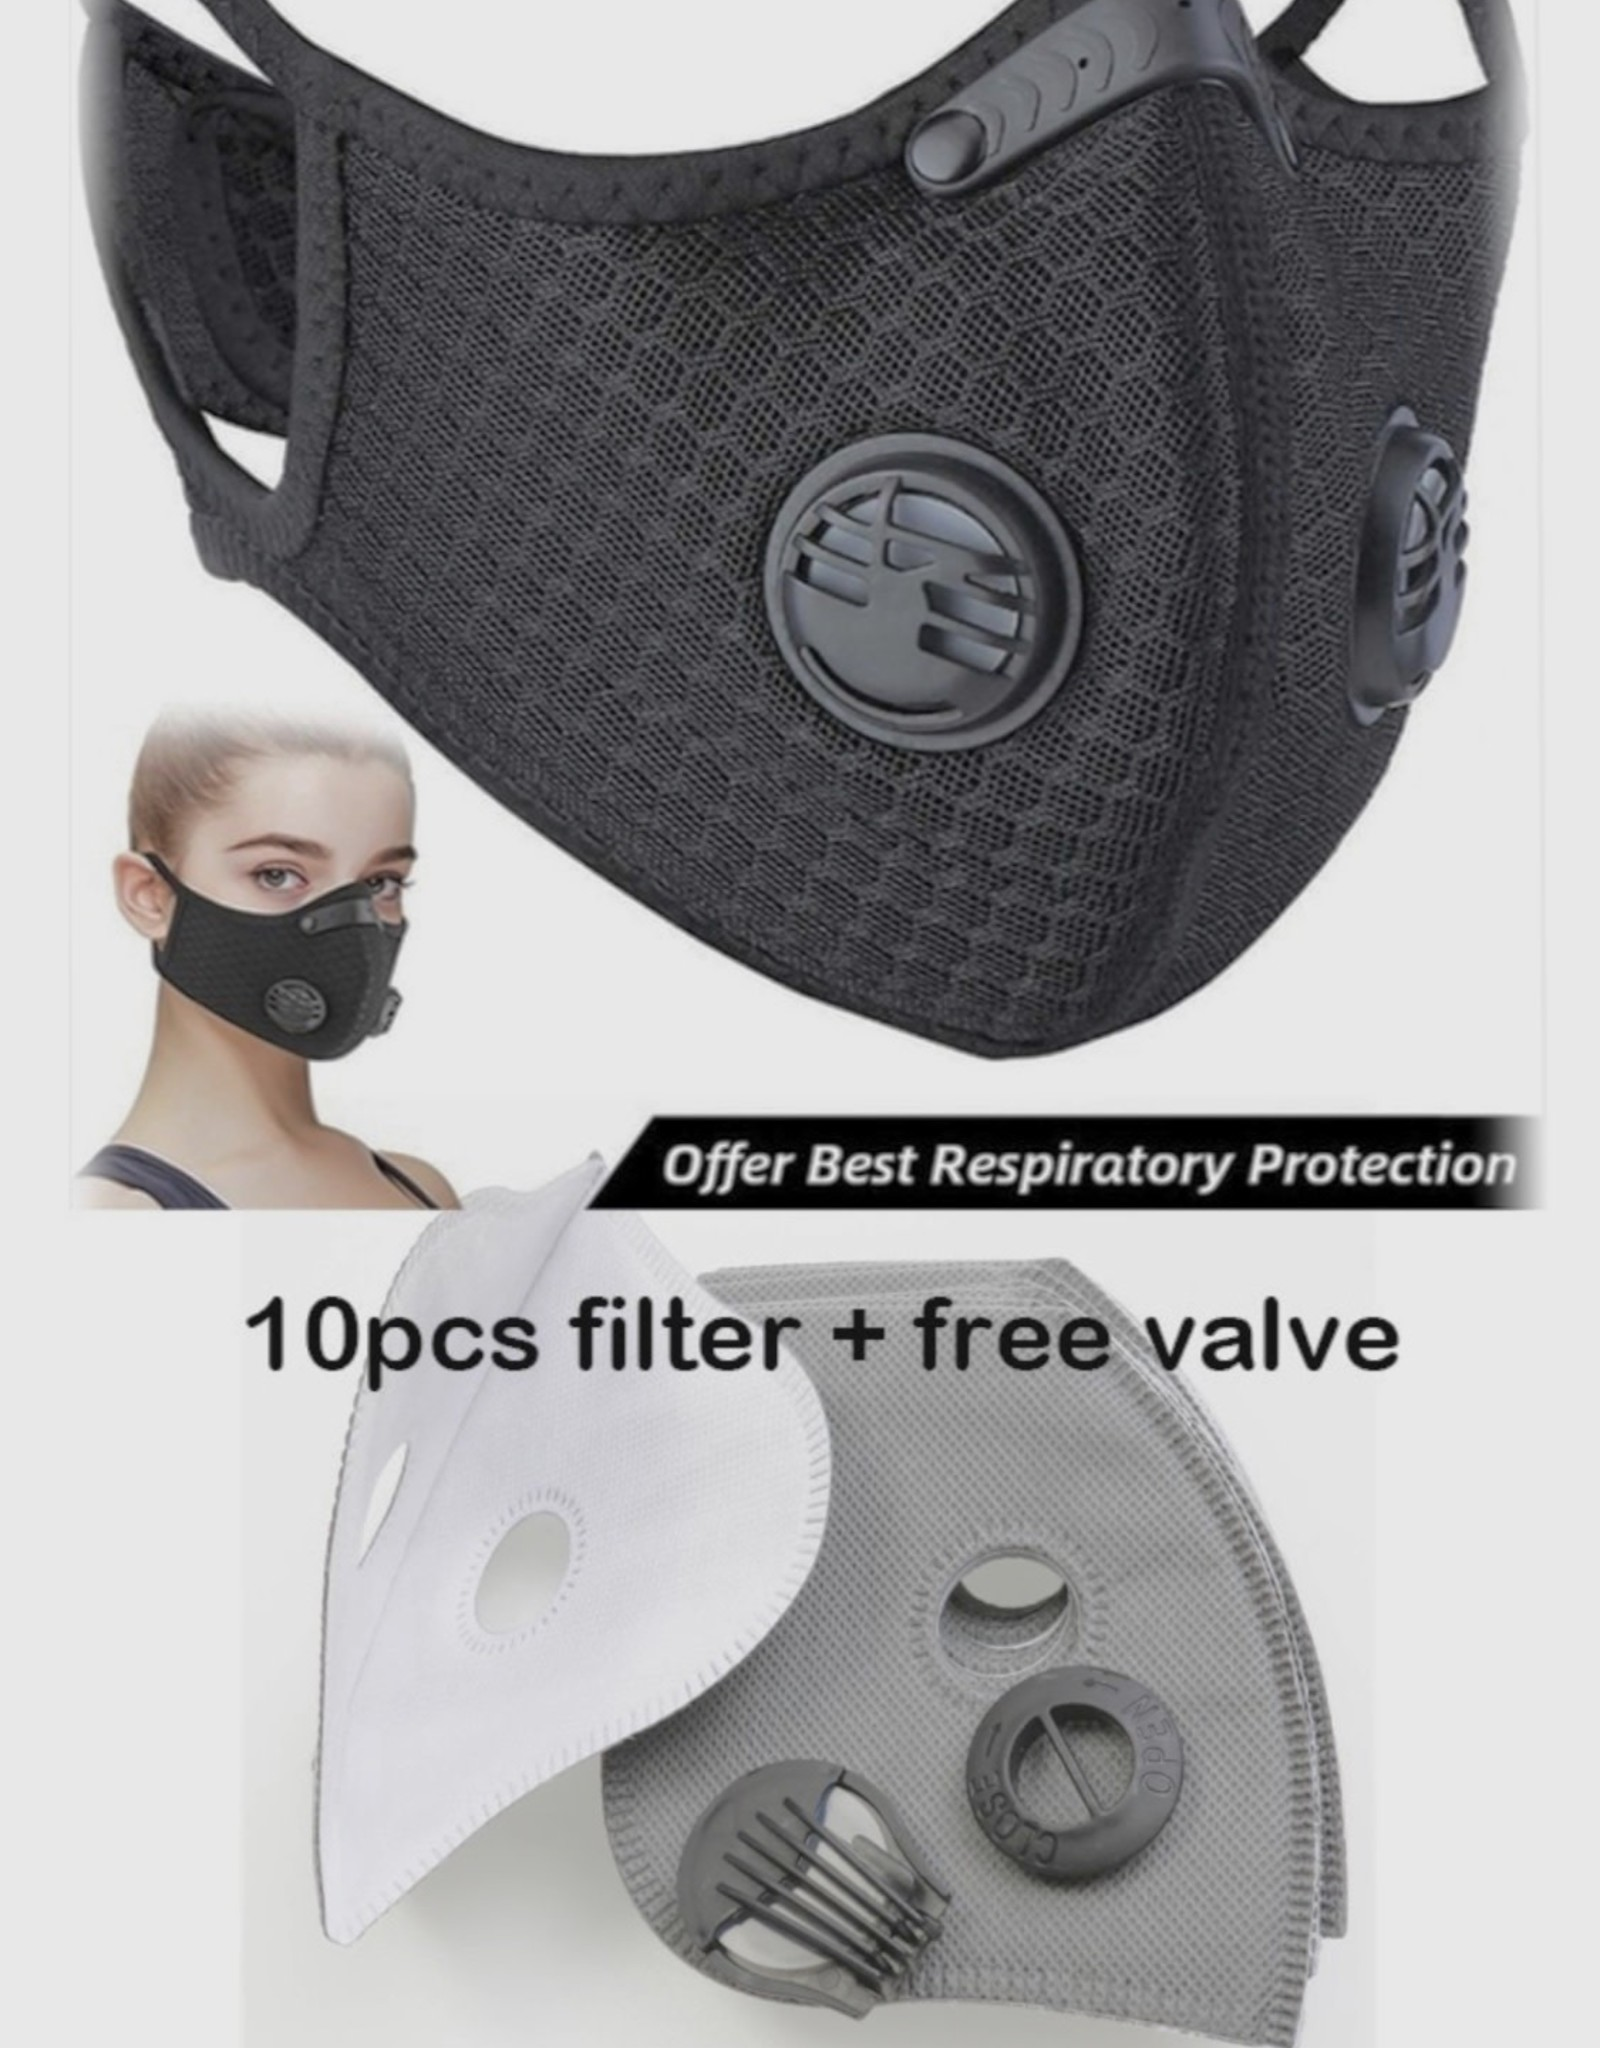 FACE MASK SPORT 10 PACK 5 LAYER FILTERS (no mask included)